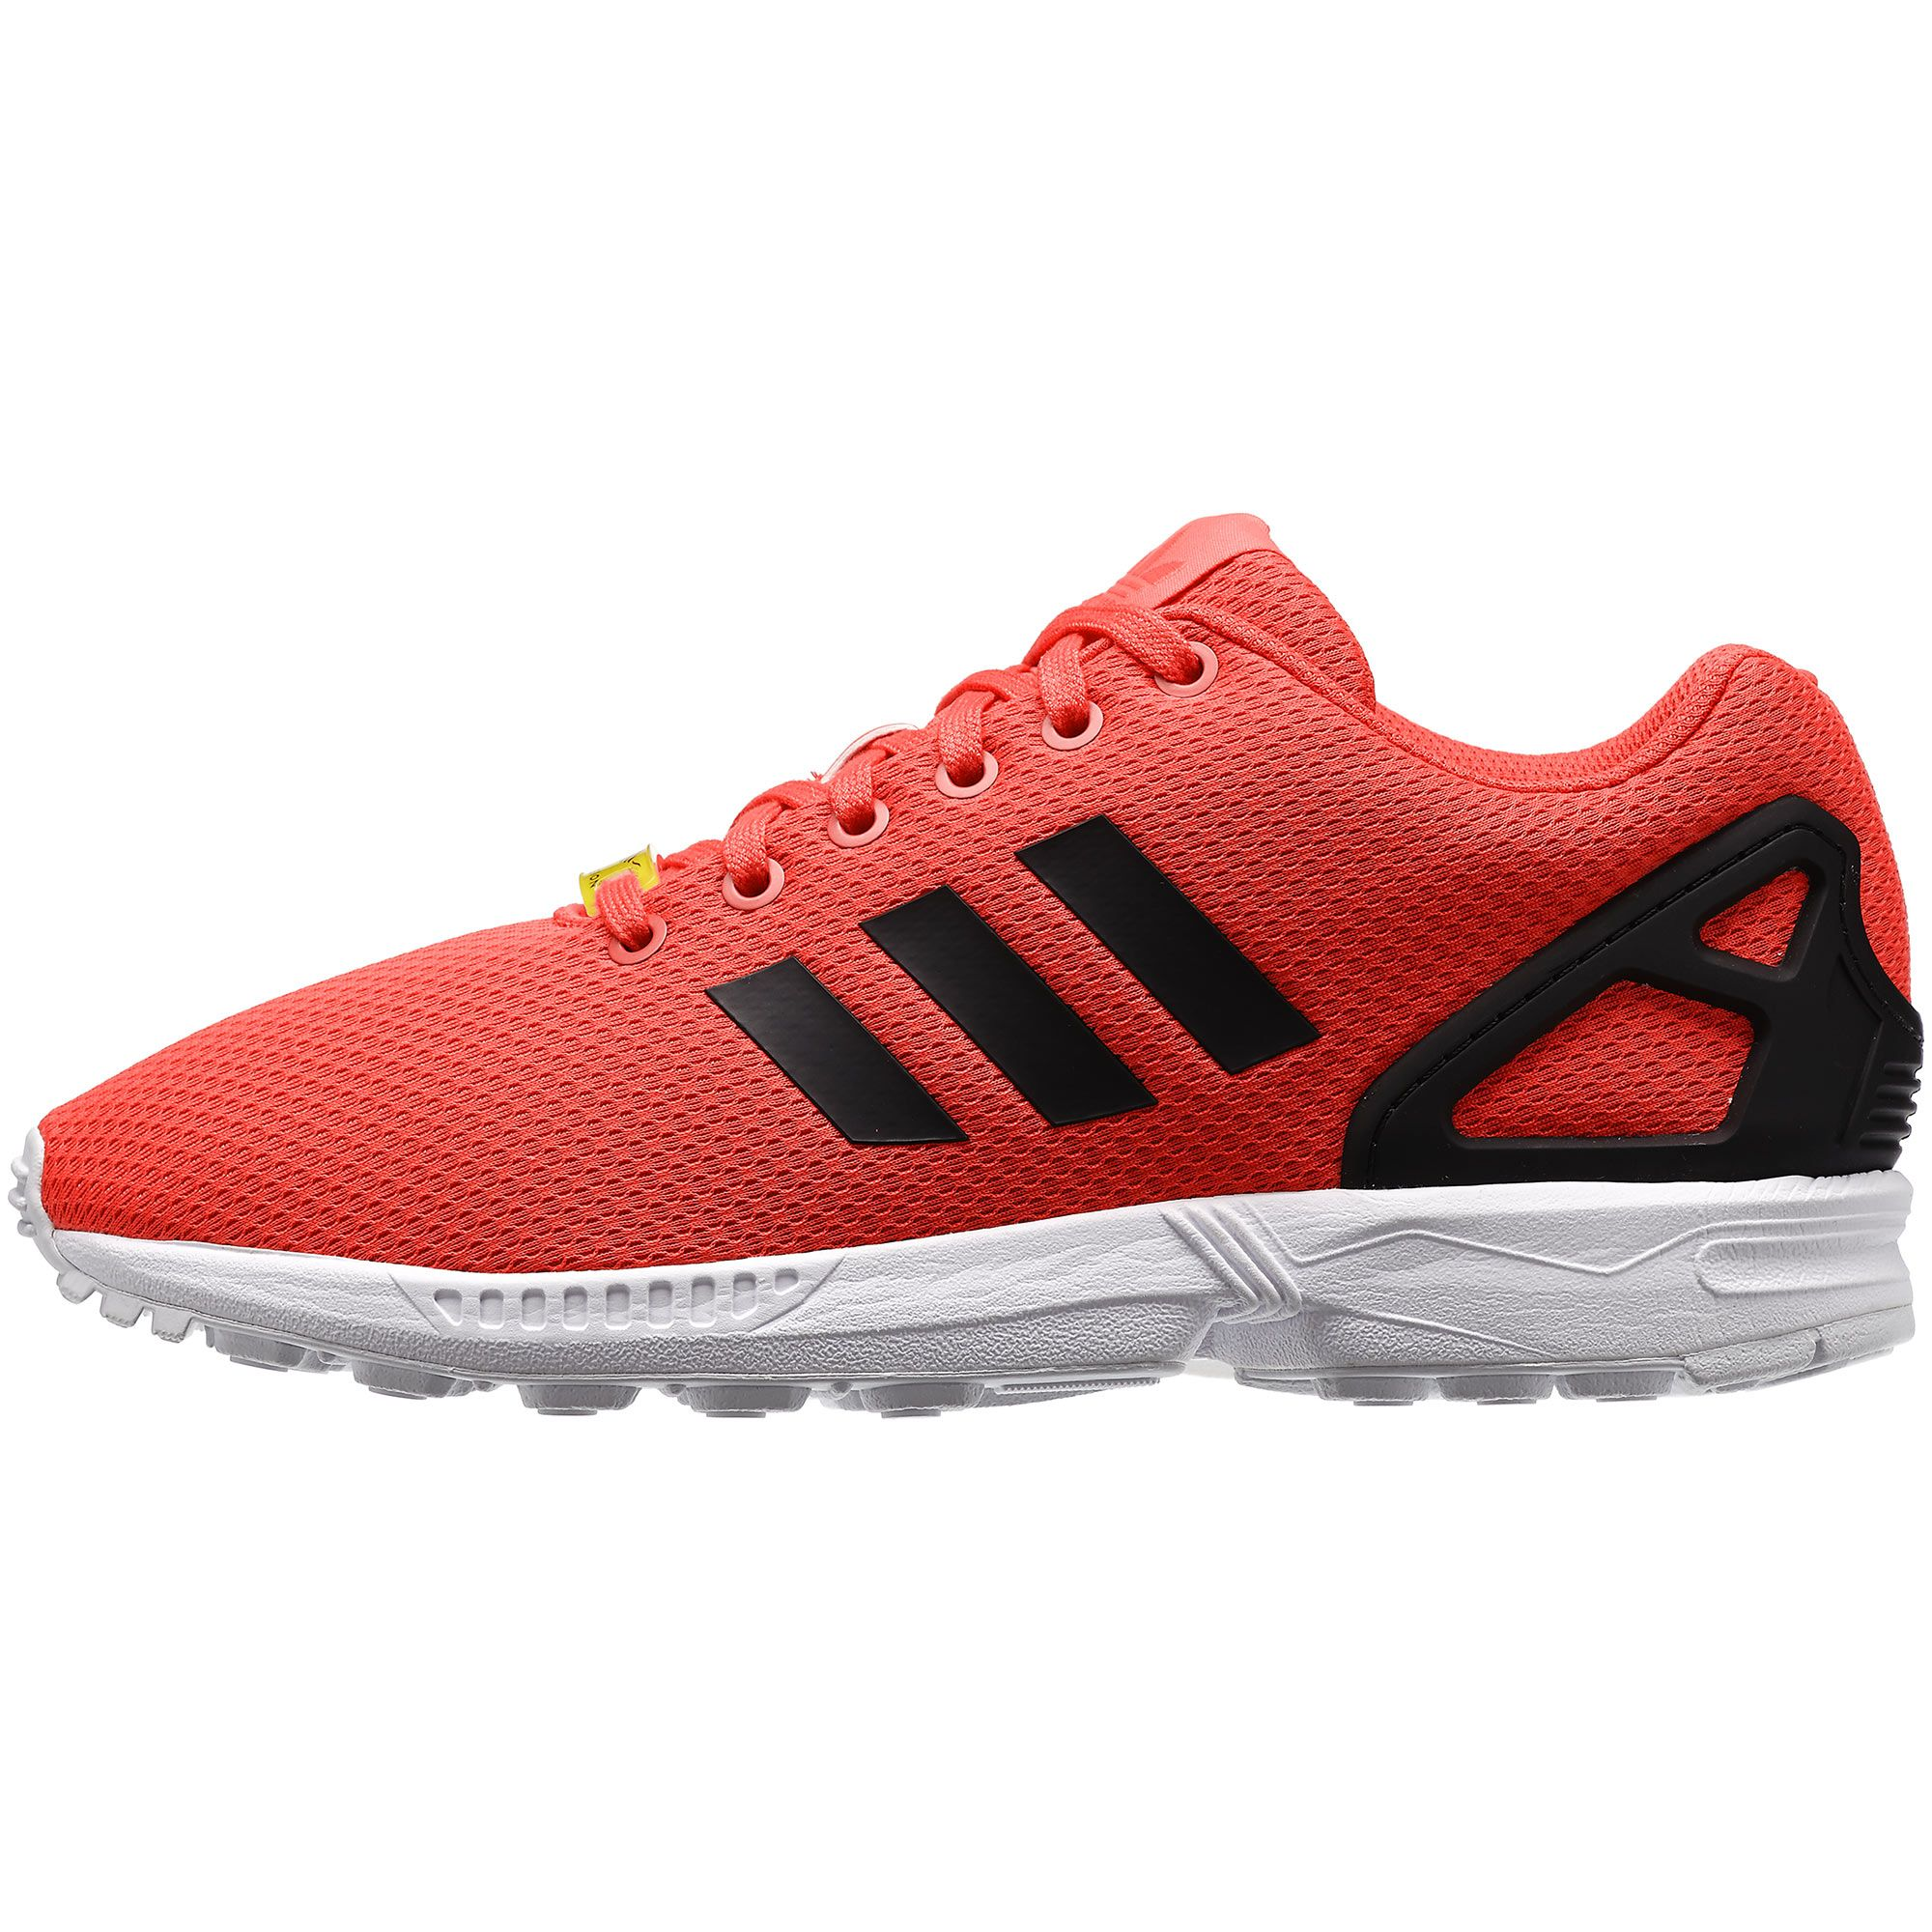 42576a4a8 ... norway adidas zx flux shoes adidas uk 5dc89 da4ef